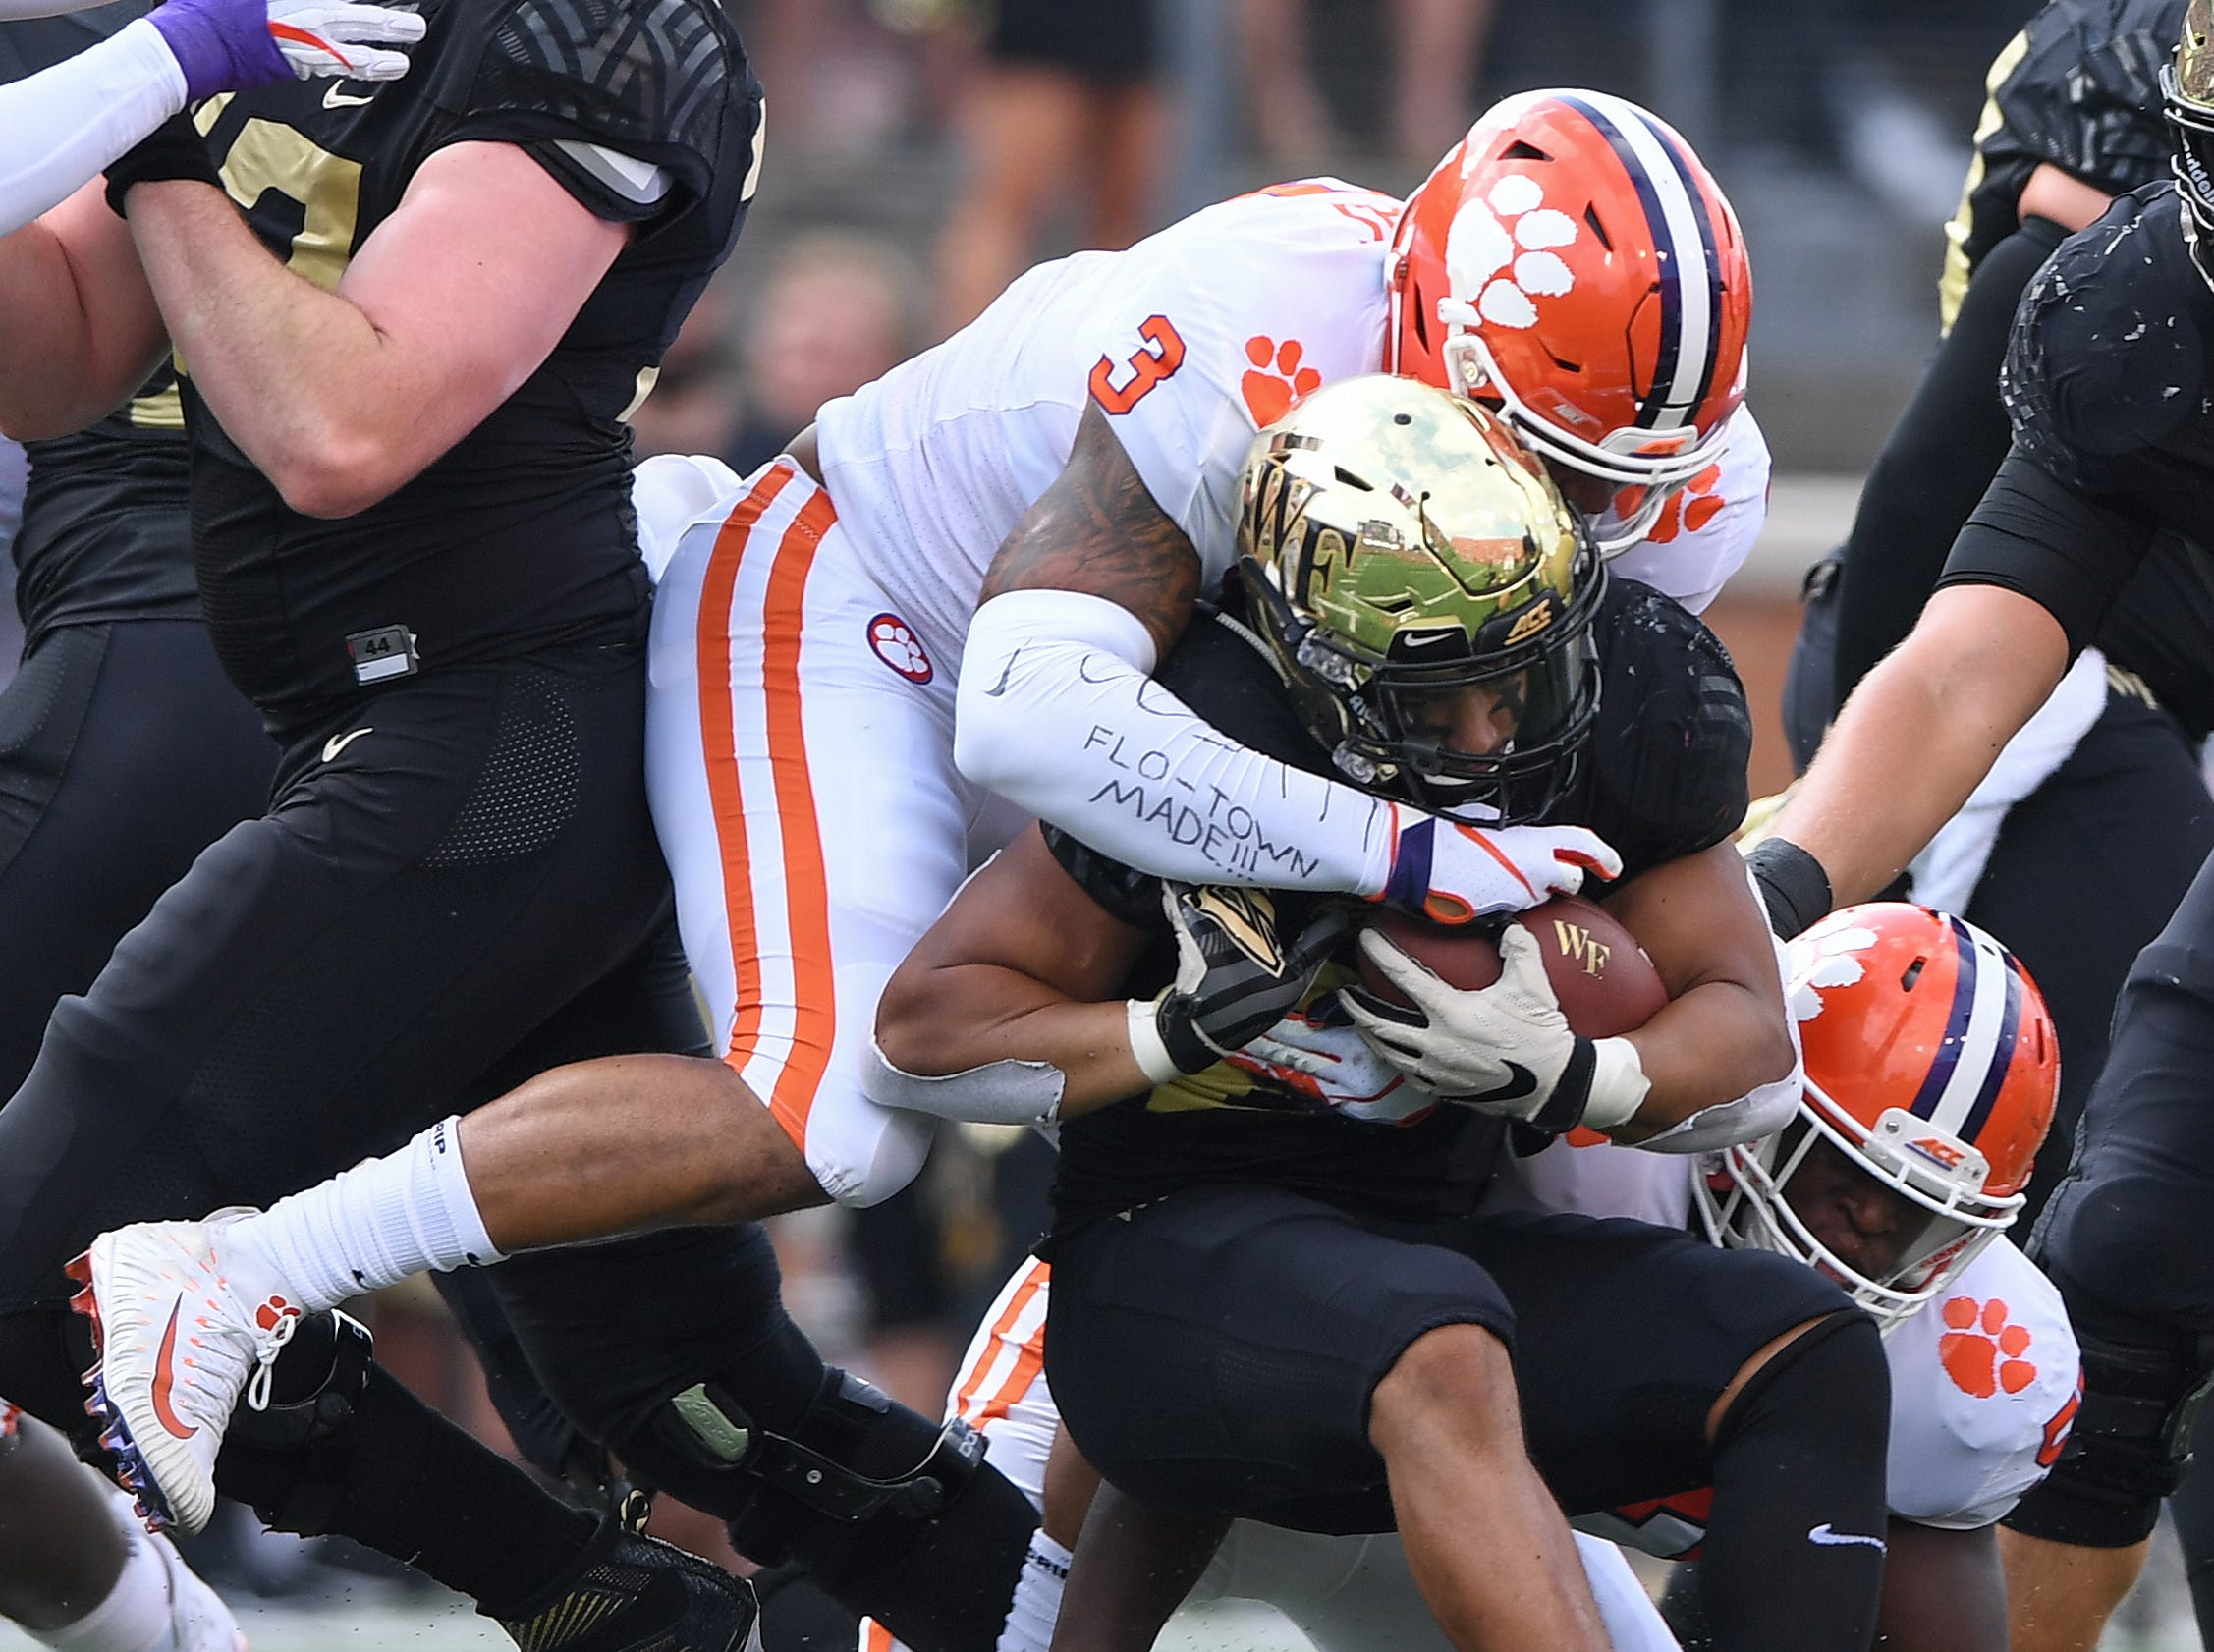 Clemson linebacker Tre Lamar (57) and defensive lineman Xavier Thomas (3) bring down Wake Forest running back Matt Colburn II (22) during the 1st quarter at BB&T Field in Winston Salem, N.C. Saturday, October 6, 2018.